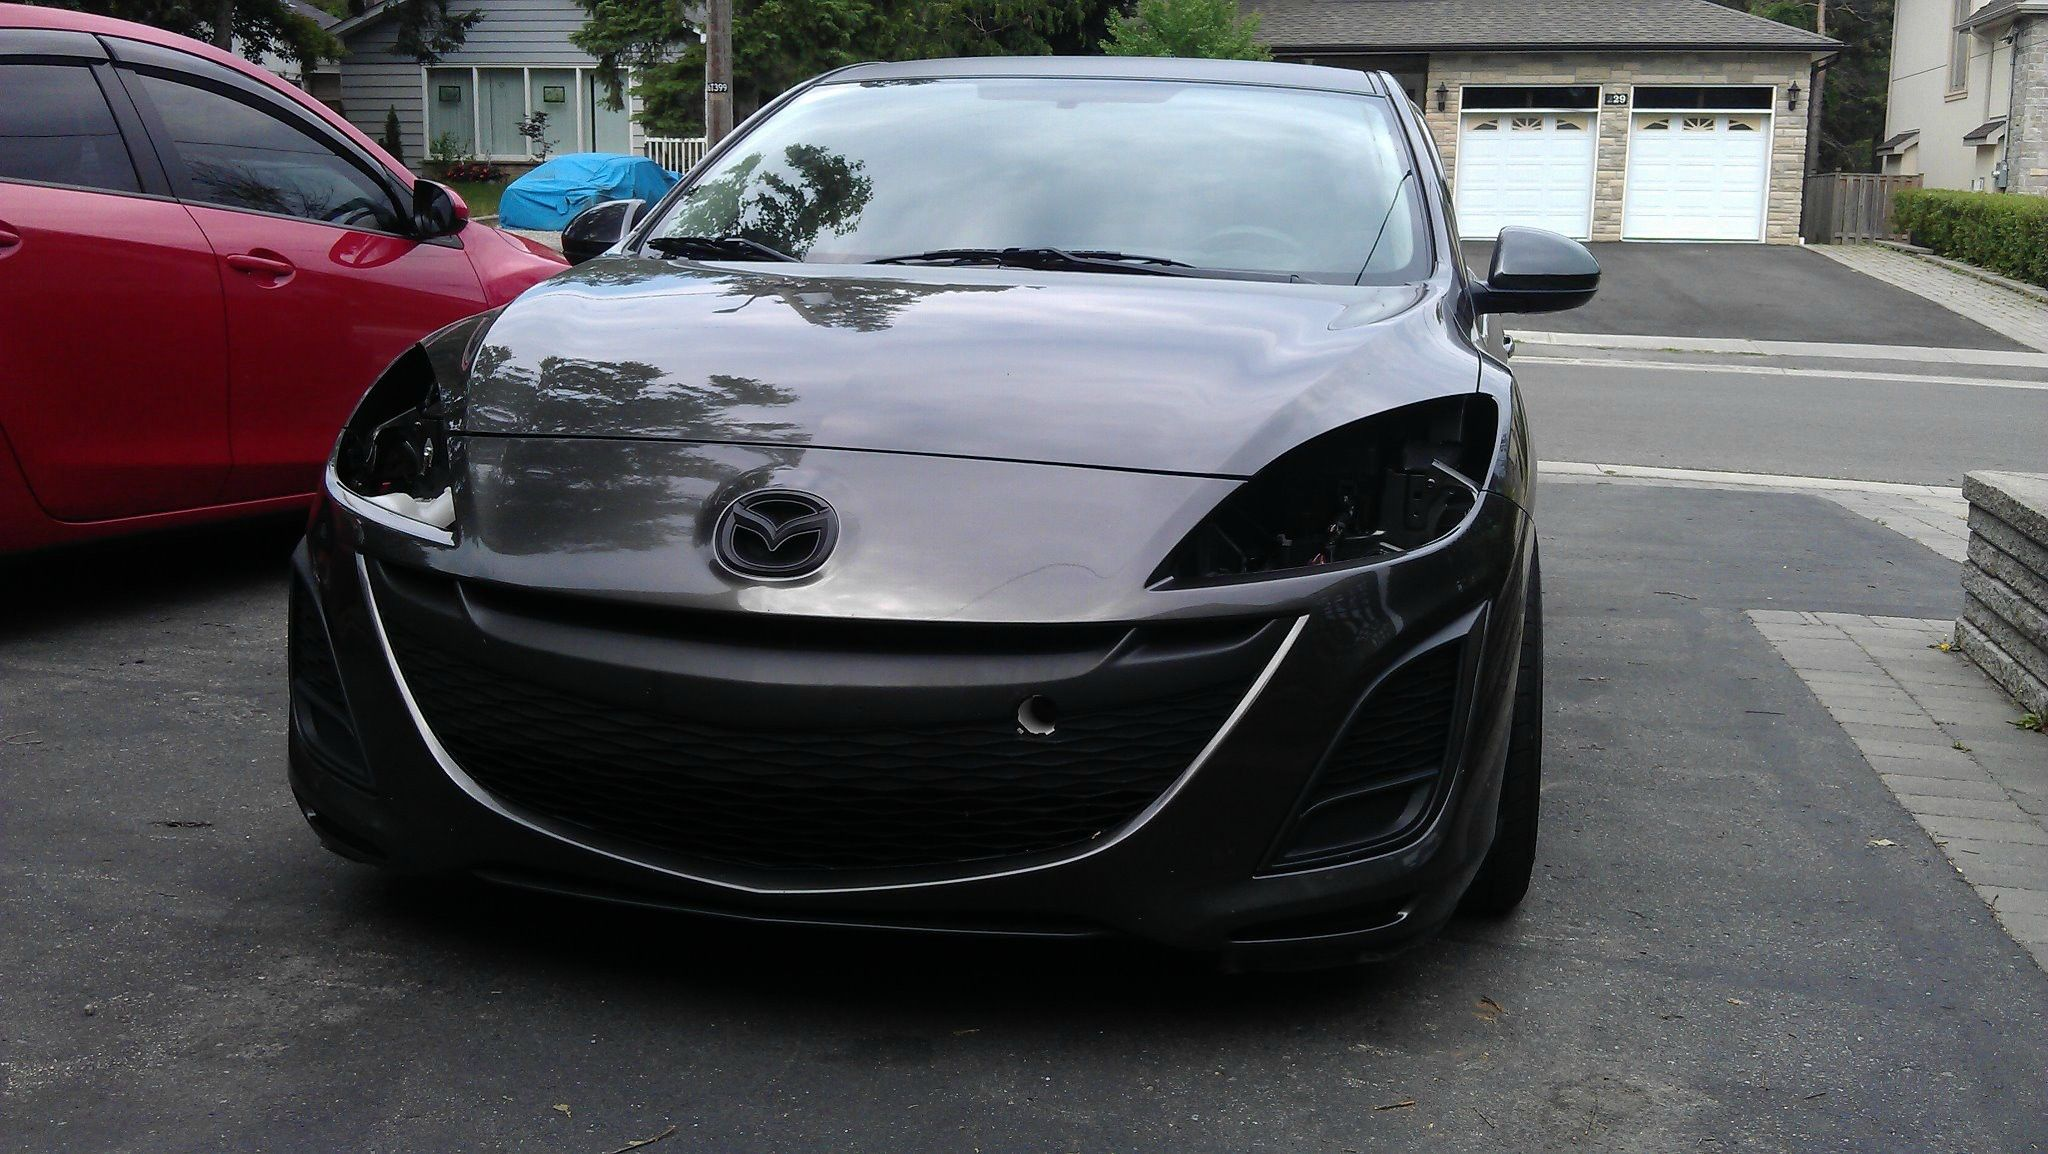 Mazda 3 Blacked Out Headlights And Emblem